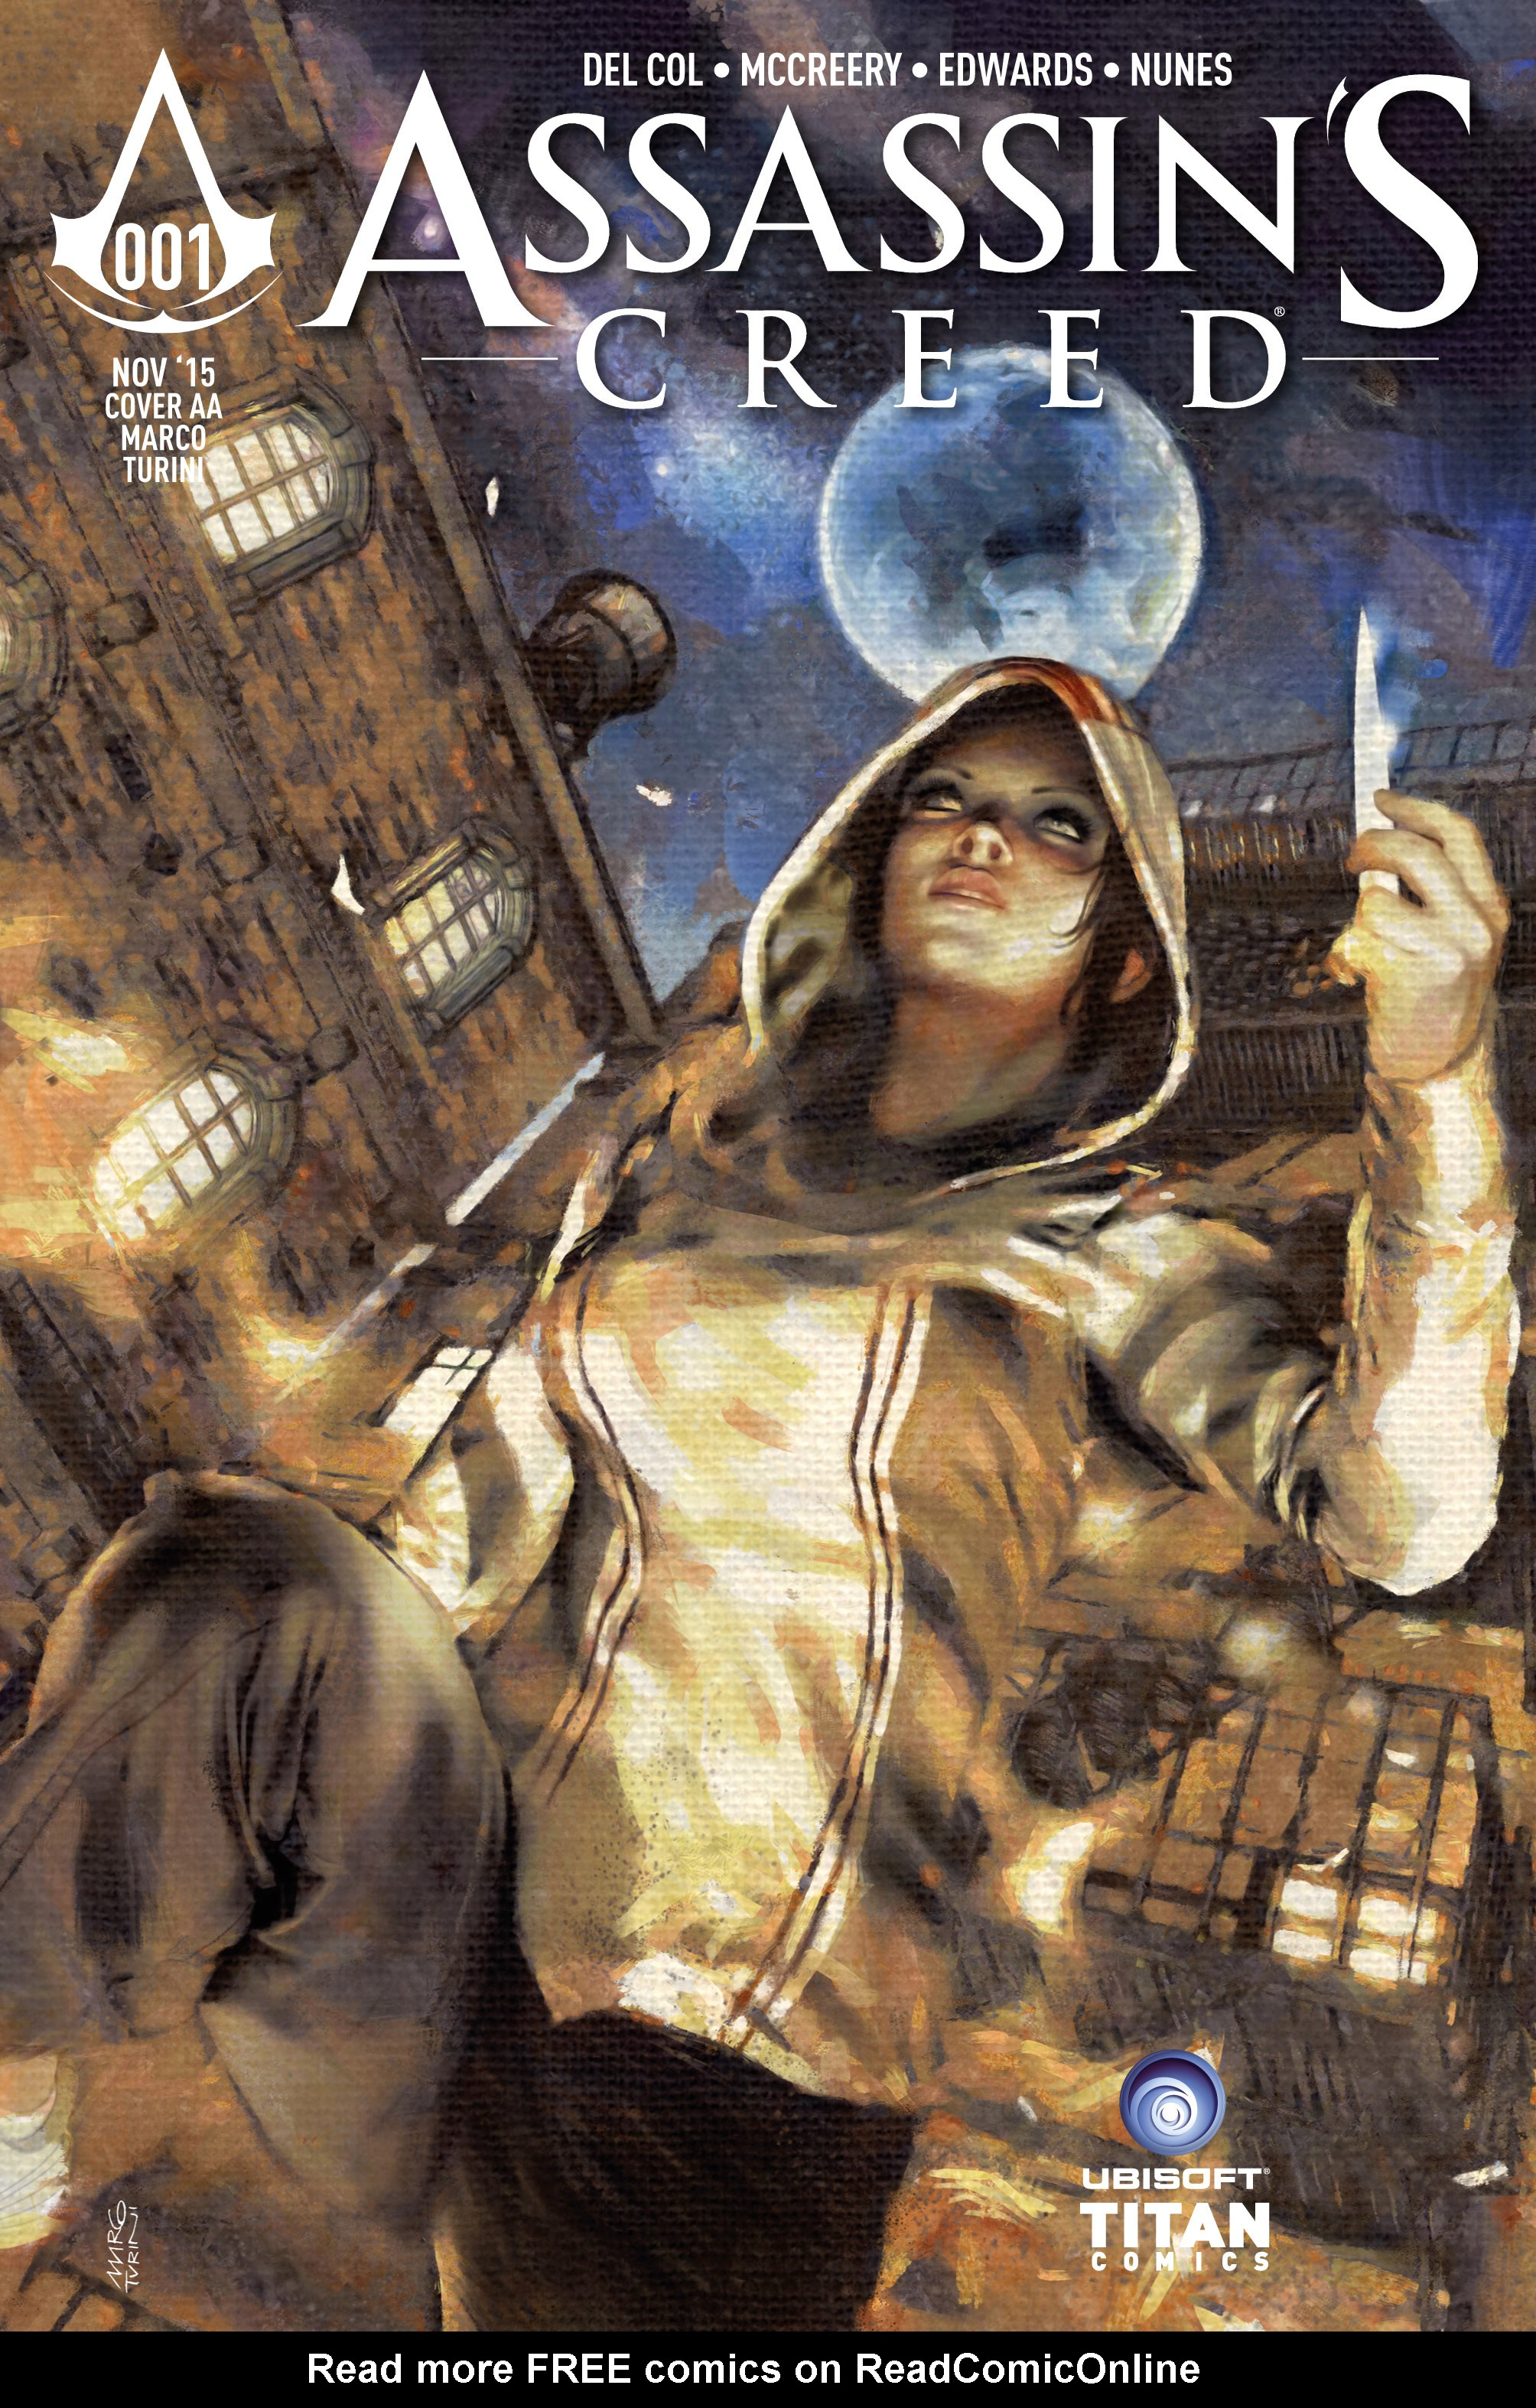 Read online Assassin's Creed (2015) comic -  Issue #1 - 1